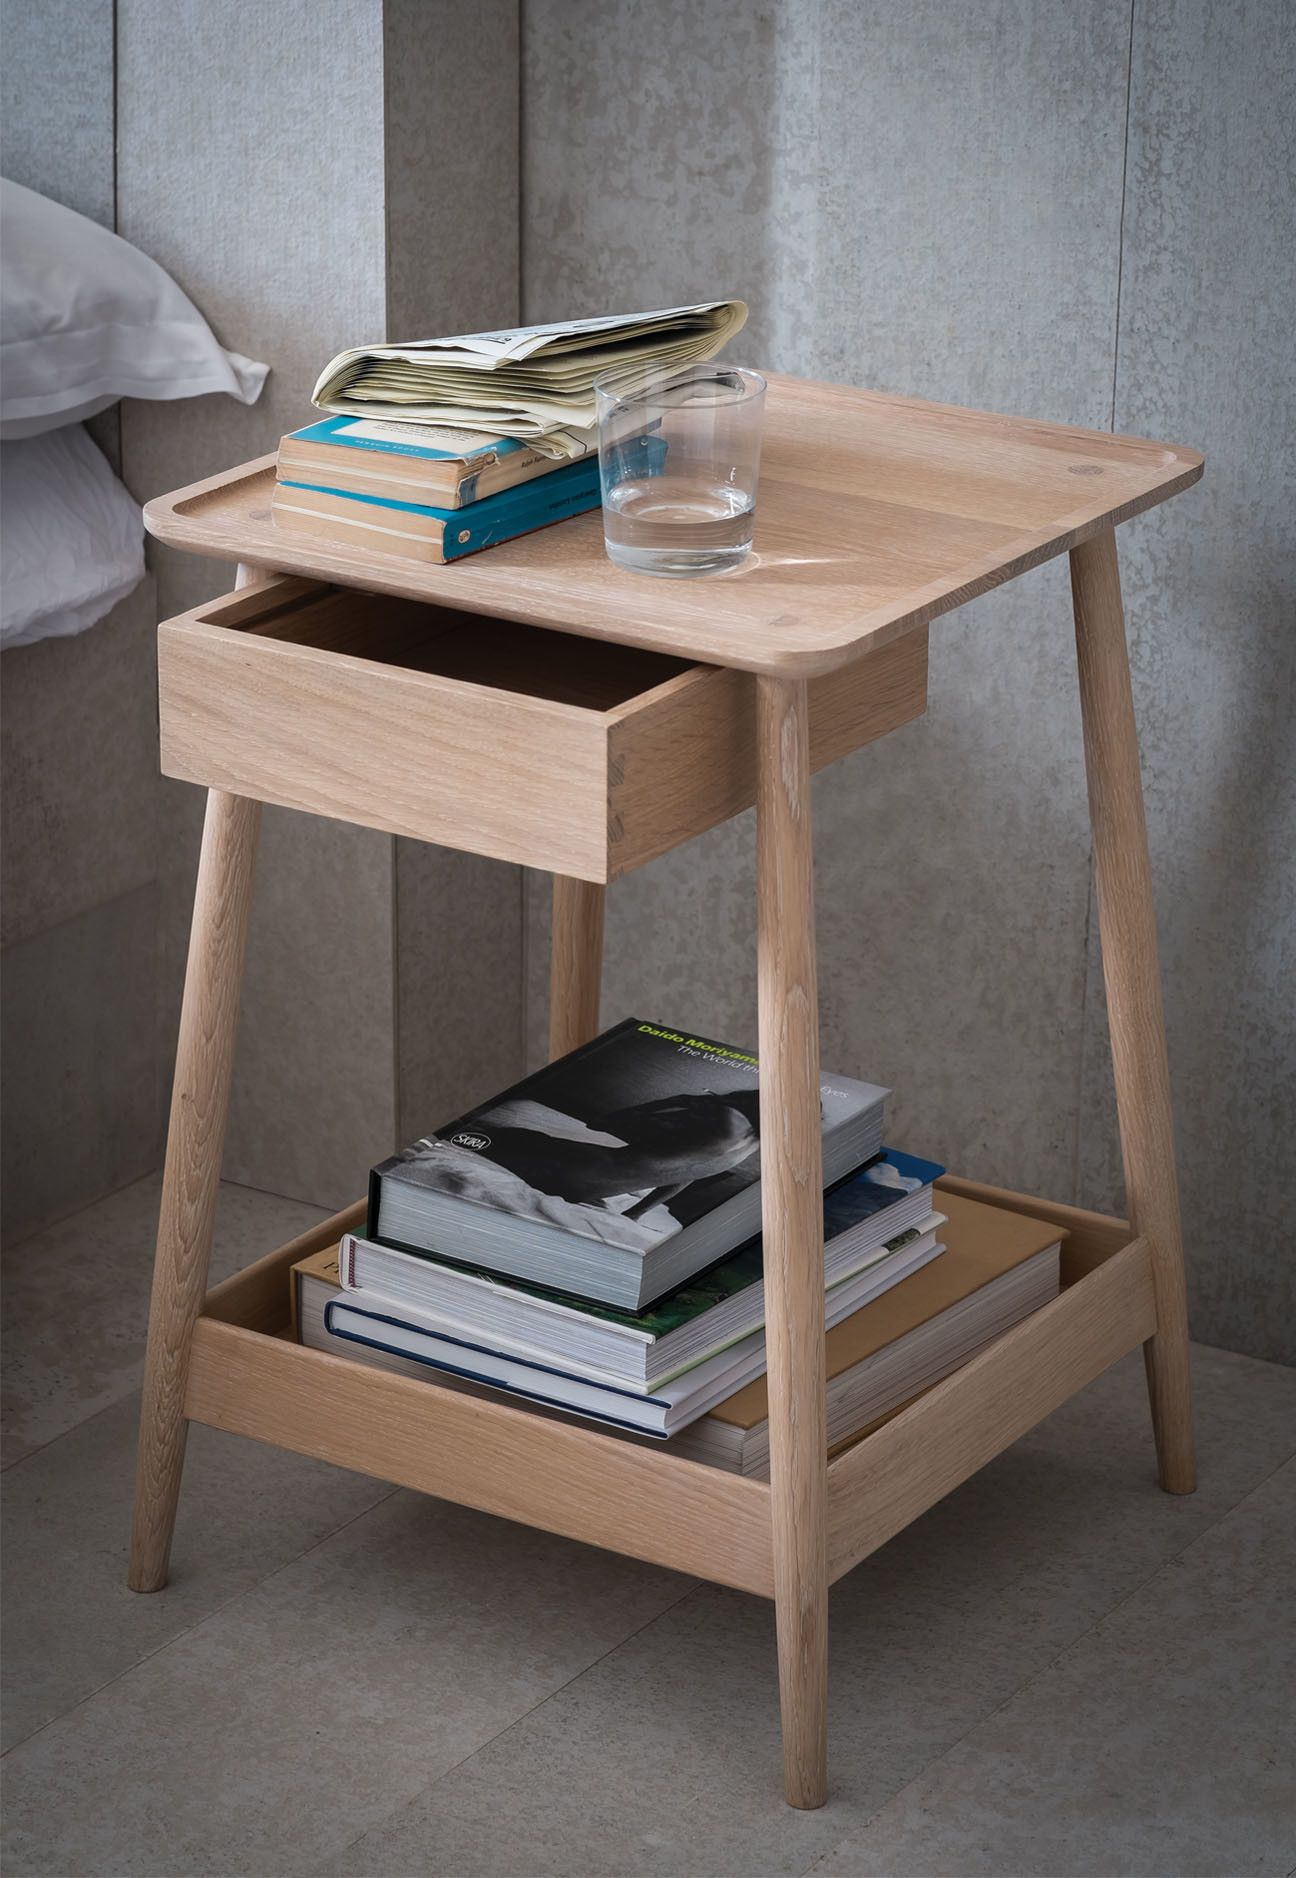 wonderful wooden bedside table designs tray high room small for white farmers industrial diy kmart space lamps decor ideas deutsch freedom sma marble mirrored narrow round